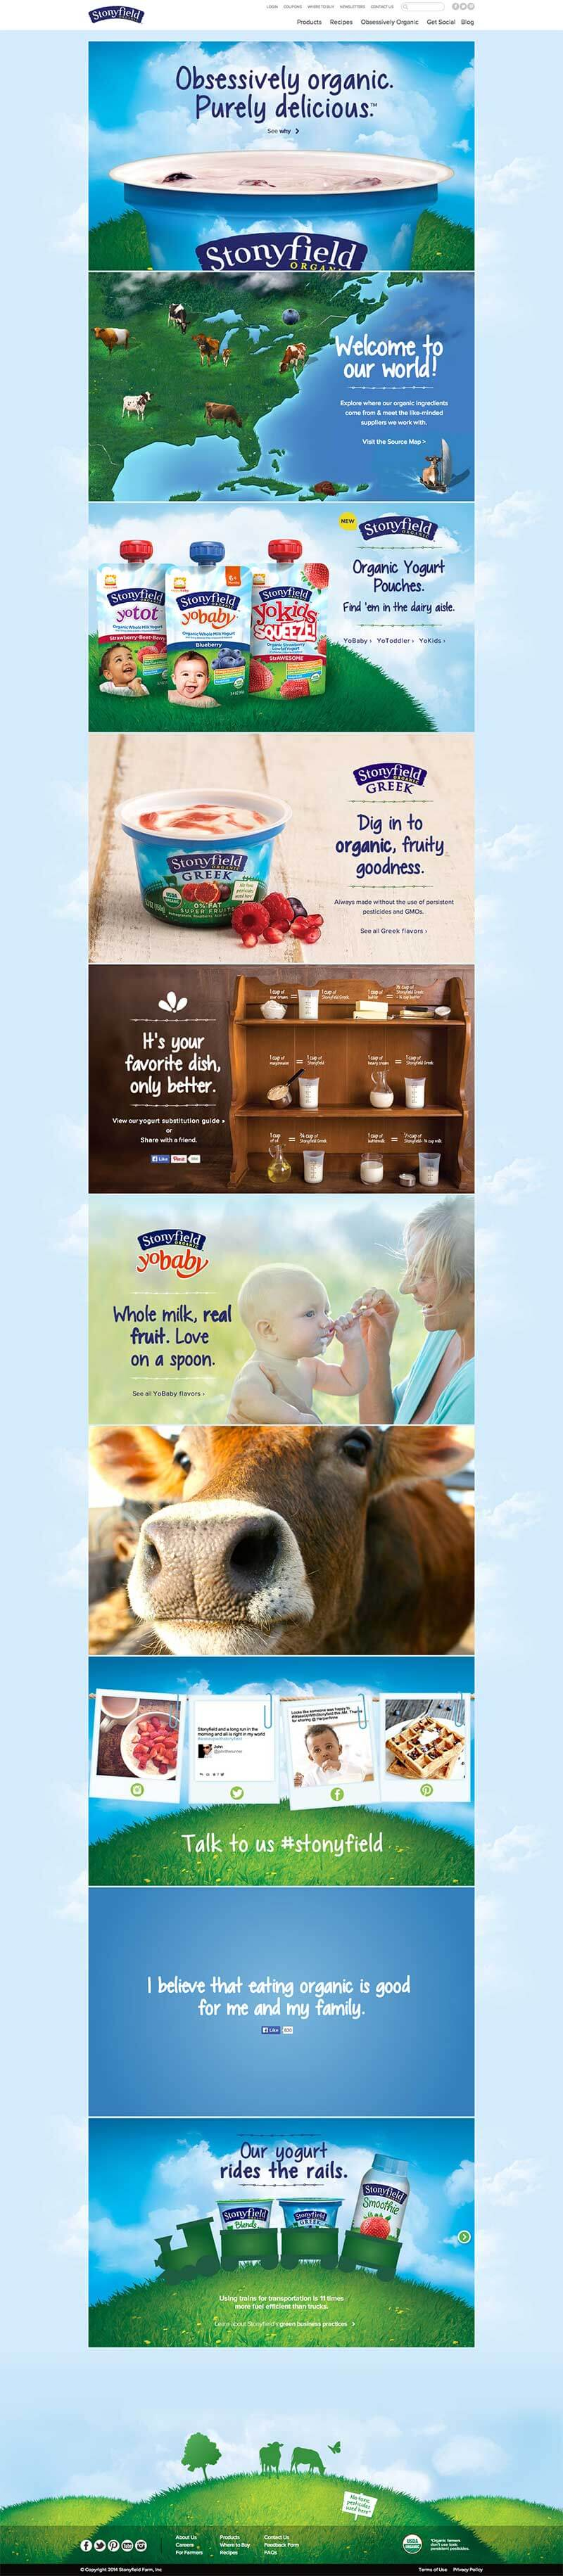 Stonyfield website redesign